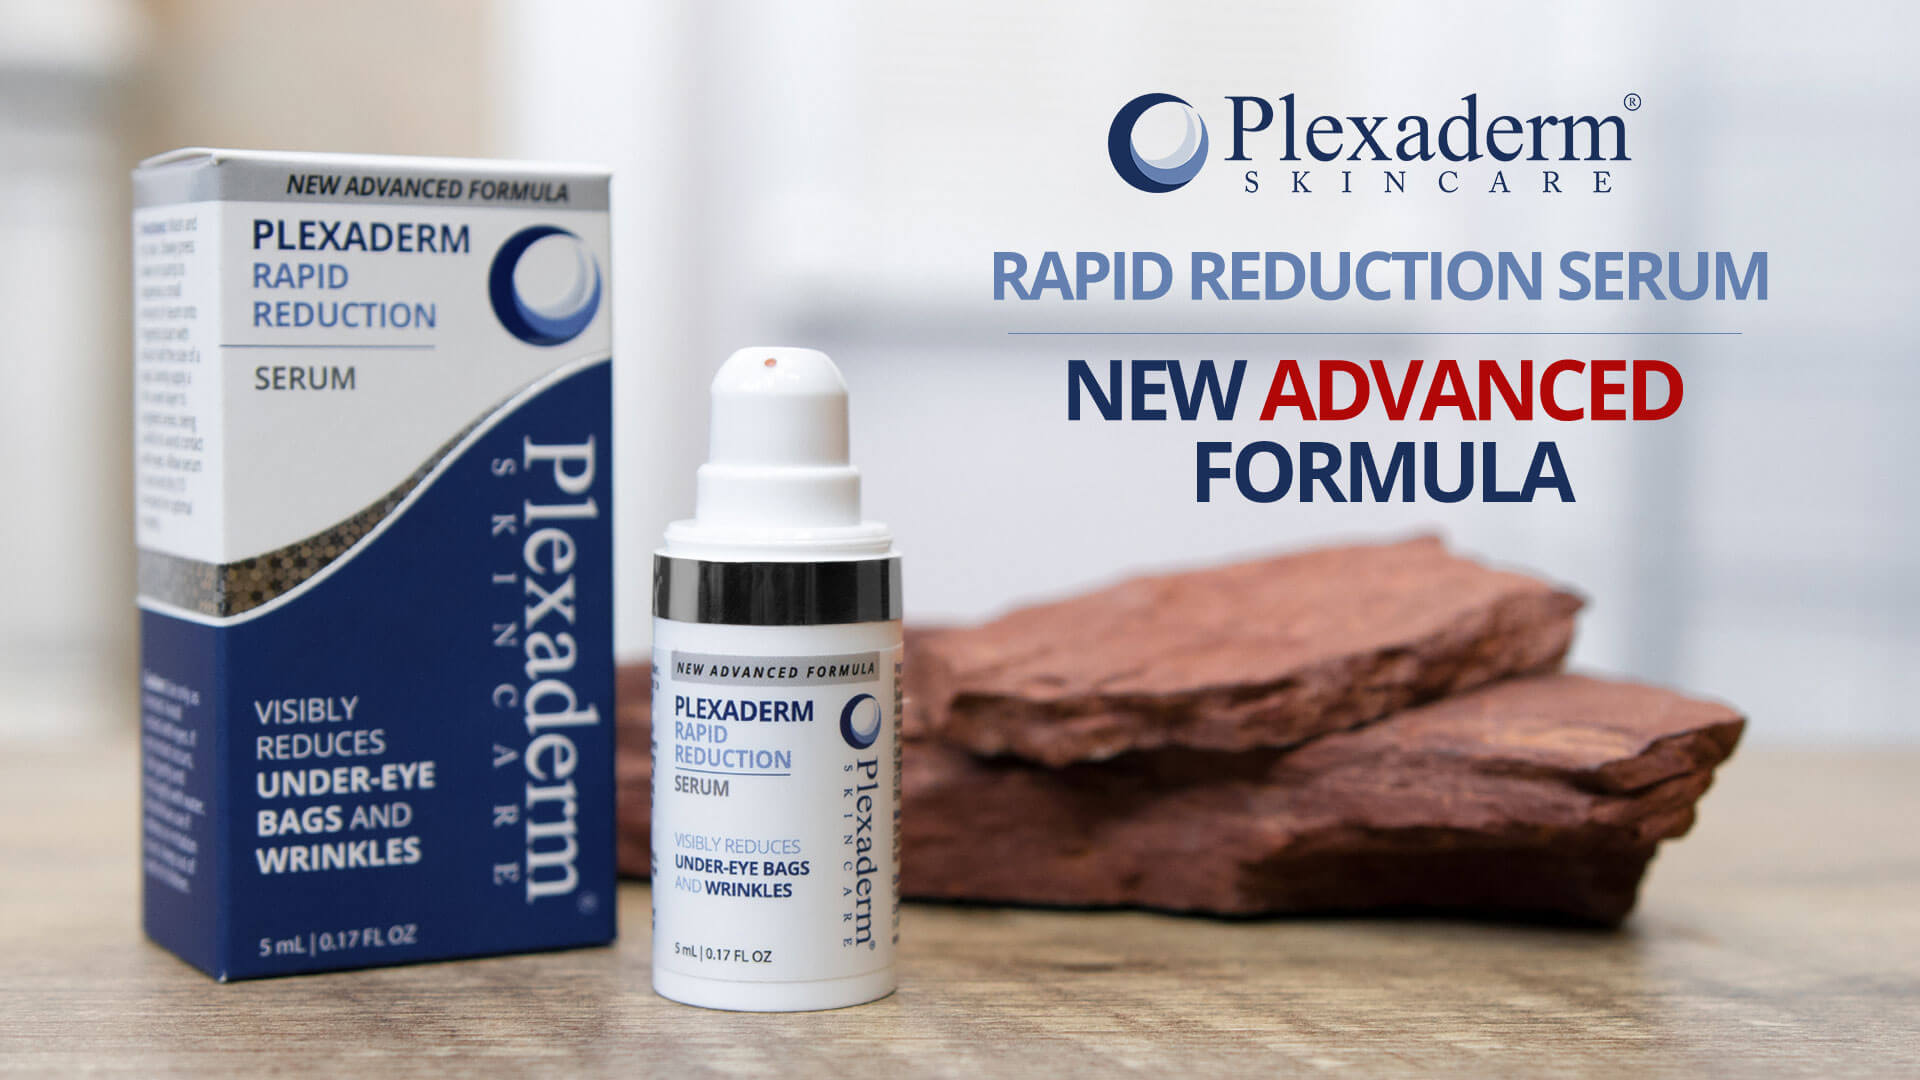 Plexaderm Rapid Reduction Serum - 3 Bottles New Advanced Formula